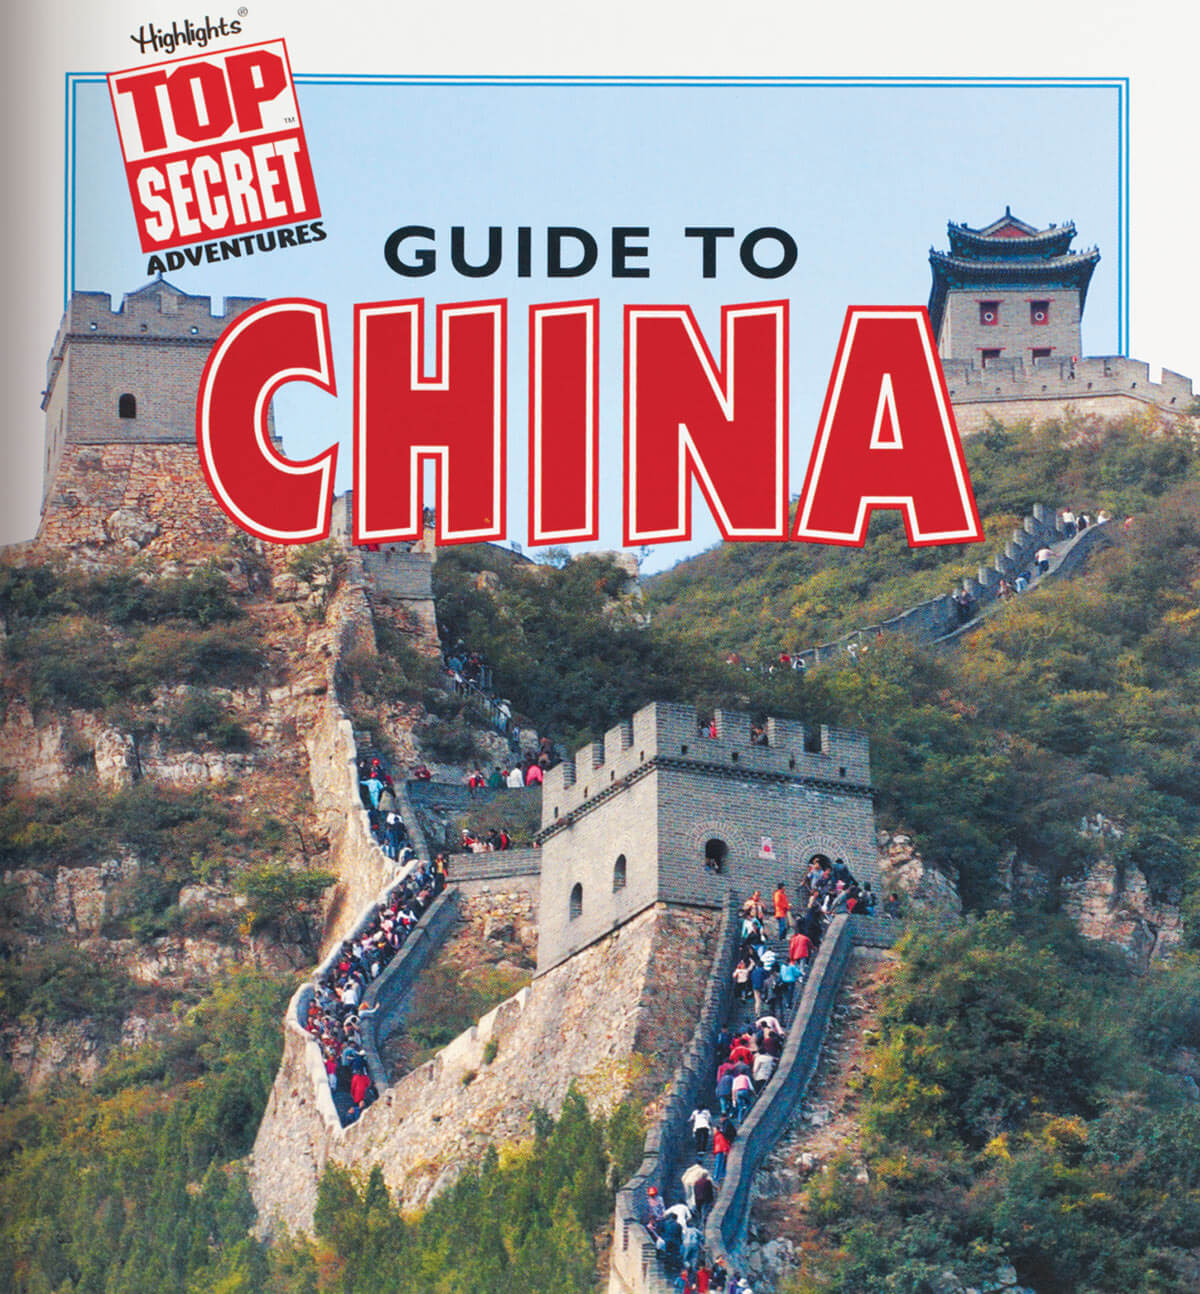 world geography book for kids top secret adventures club